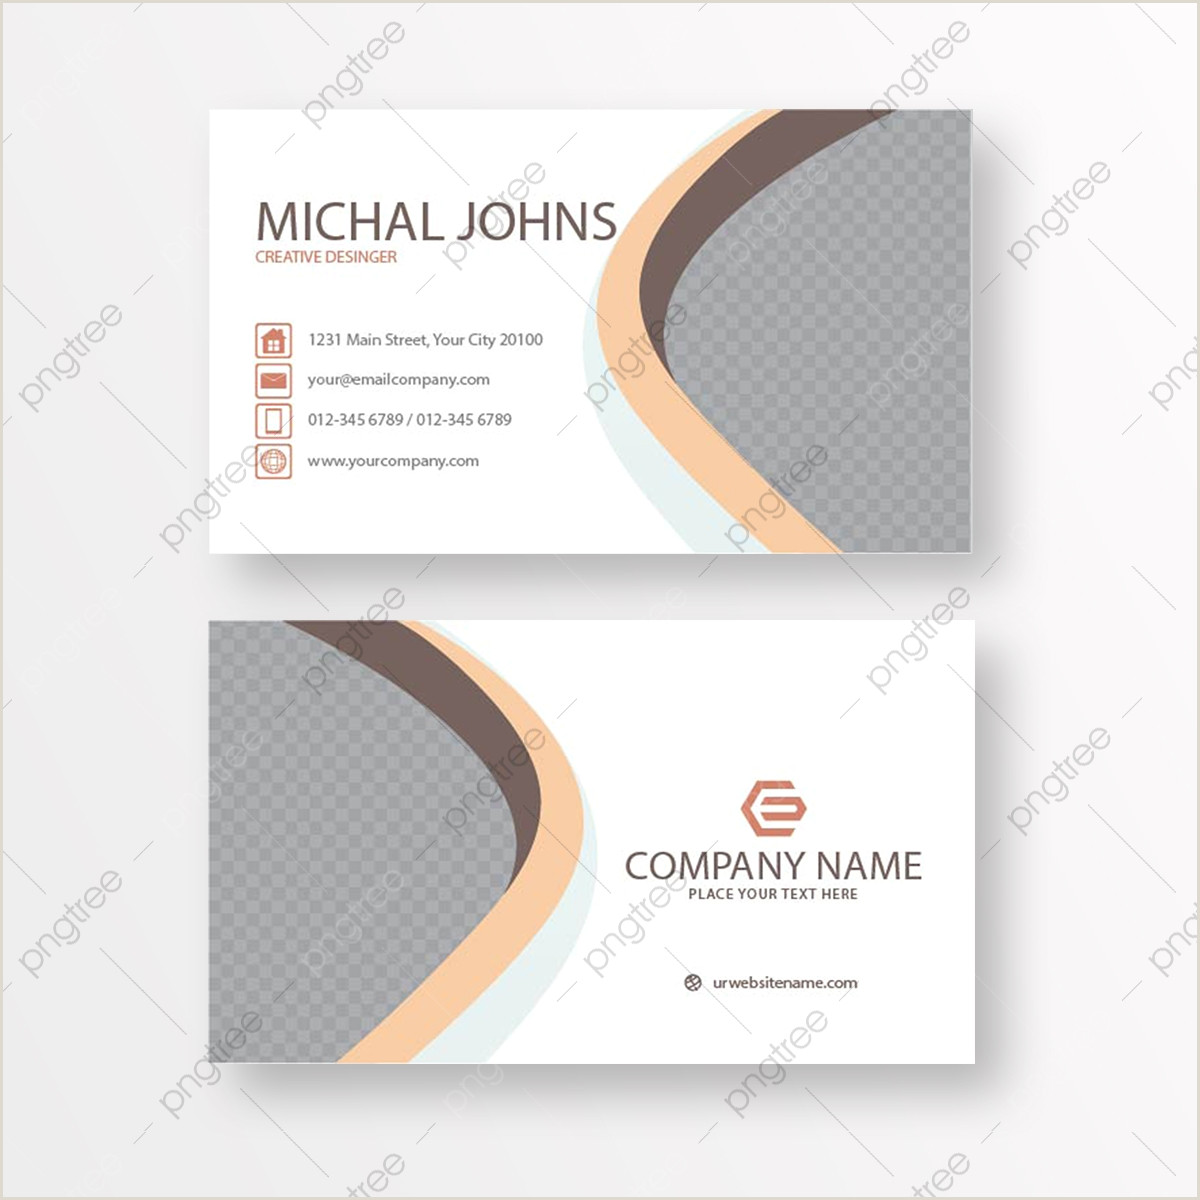 Business Card Design With Photo Business Card Design Png